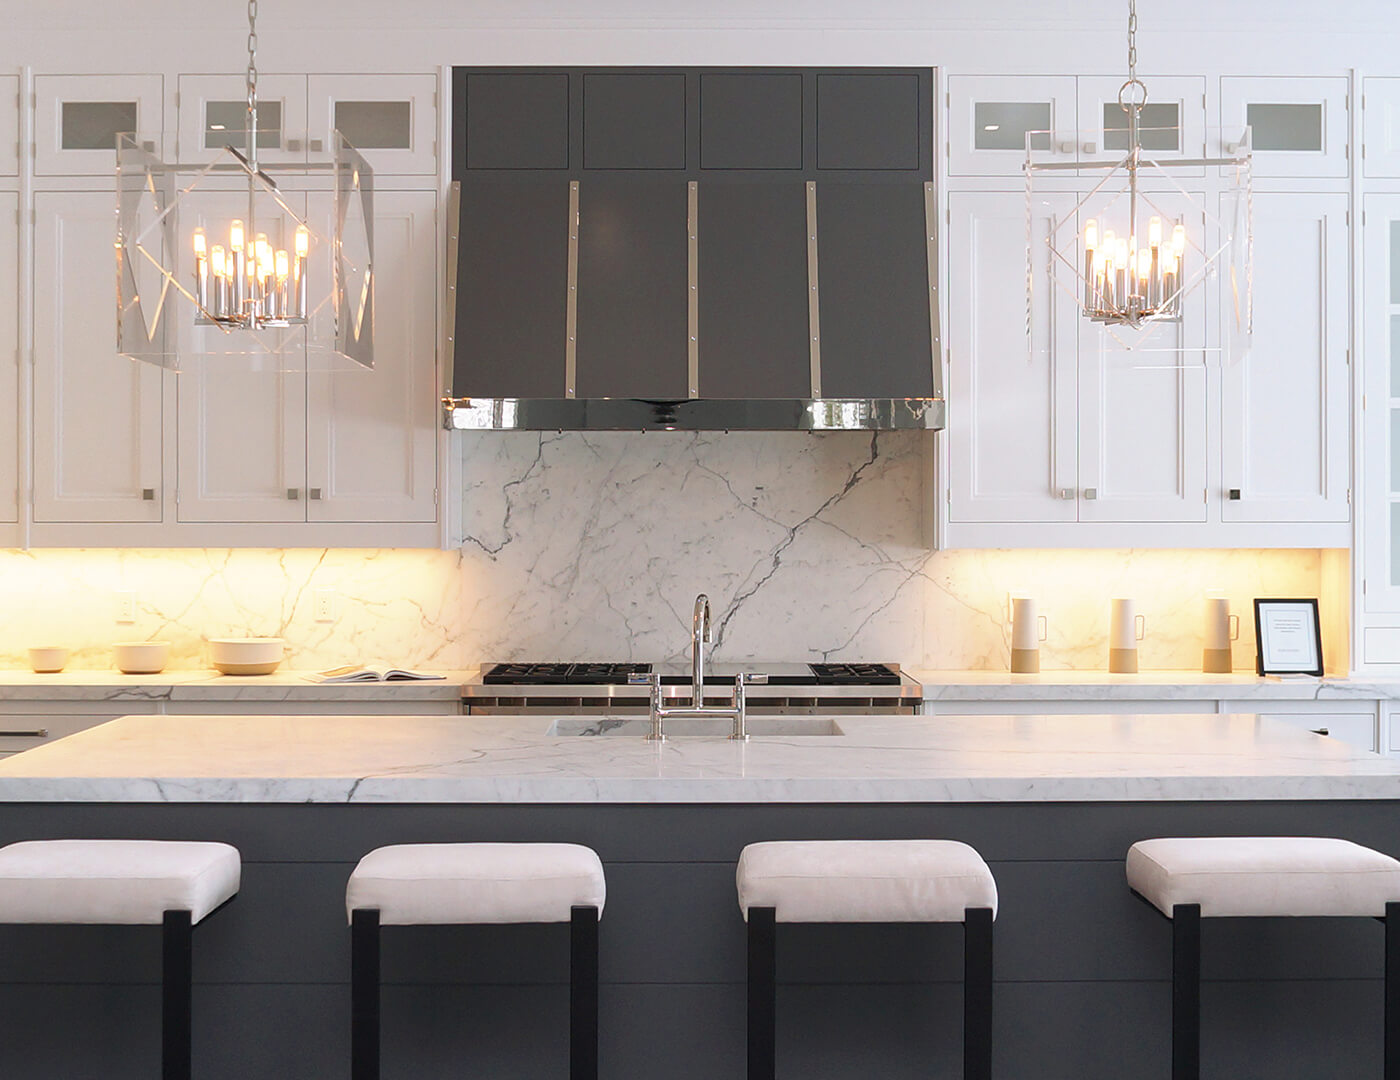 Bay Lane hand painted white and gray custom handcrafted cabinets with a microwave inset and custom wine chiller